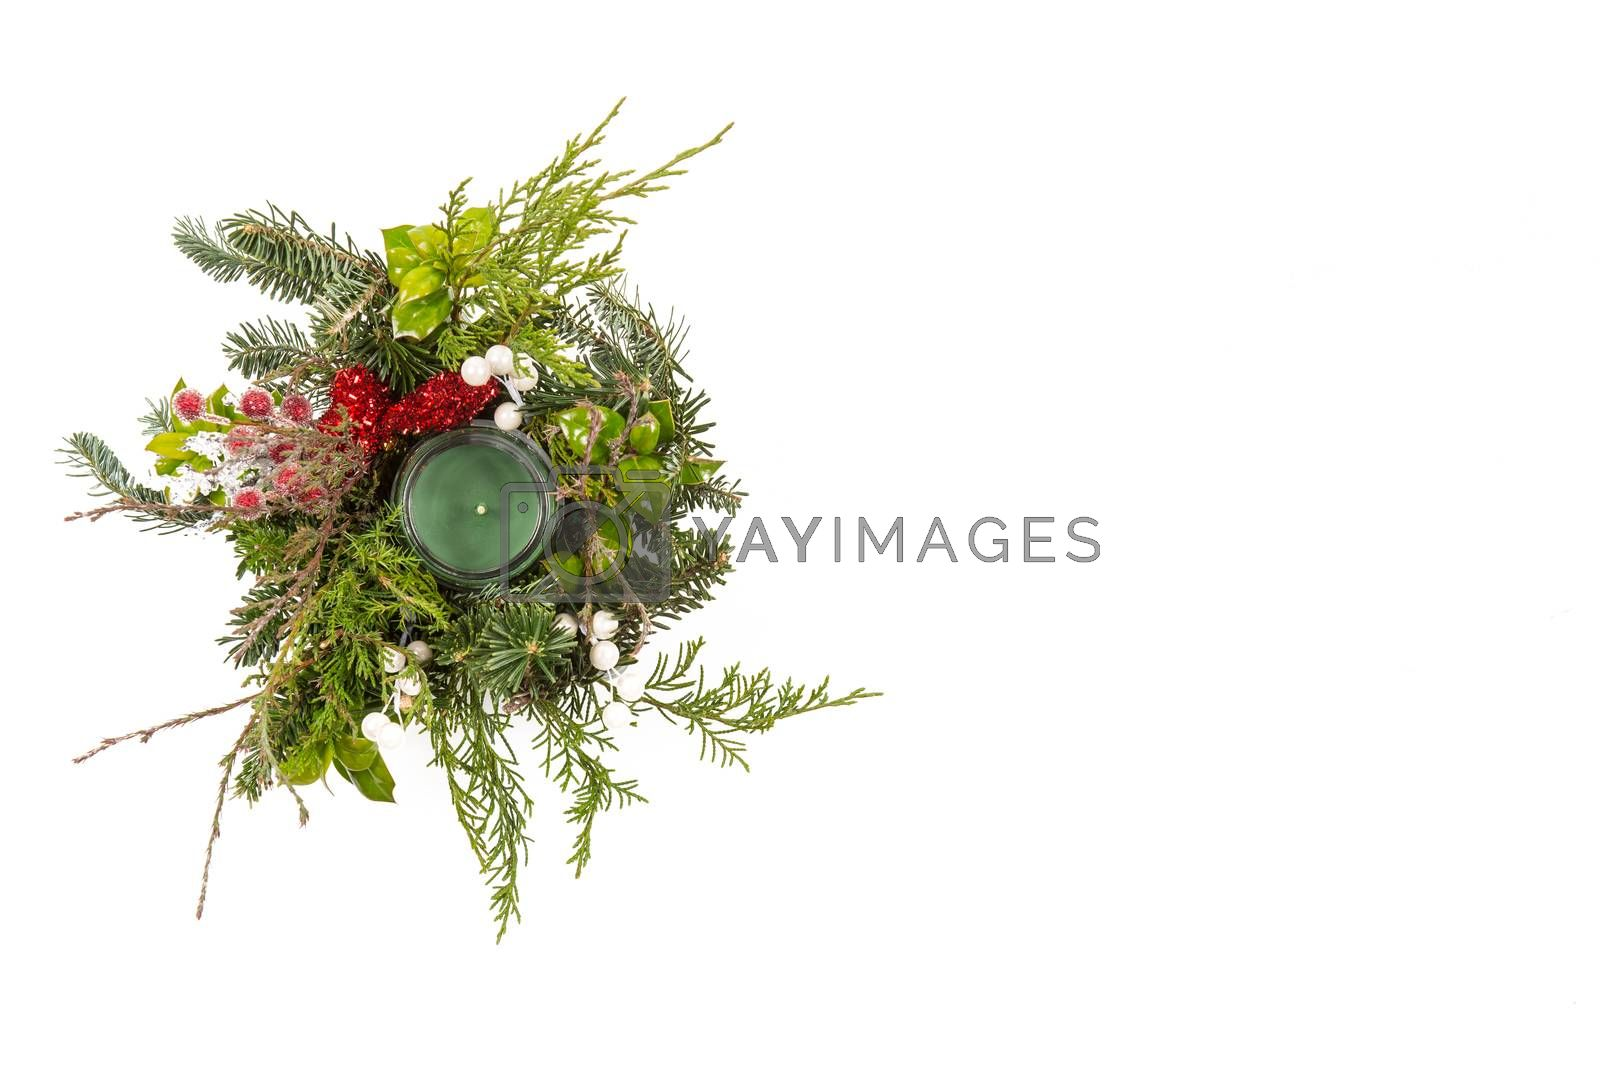 Christmas Decoration by Dan Totilca